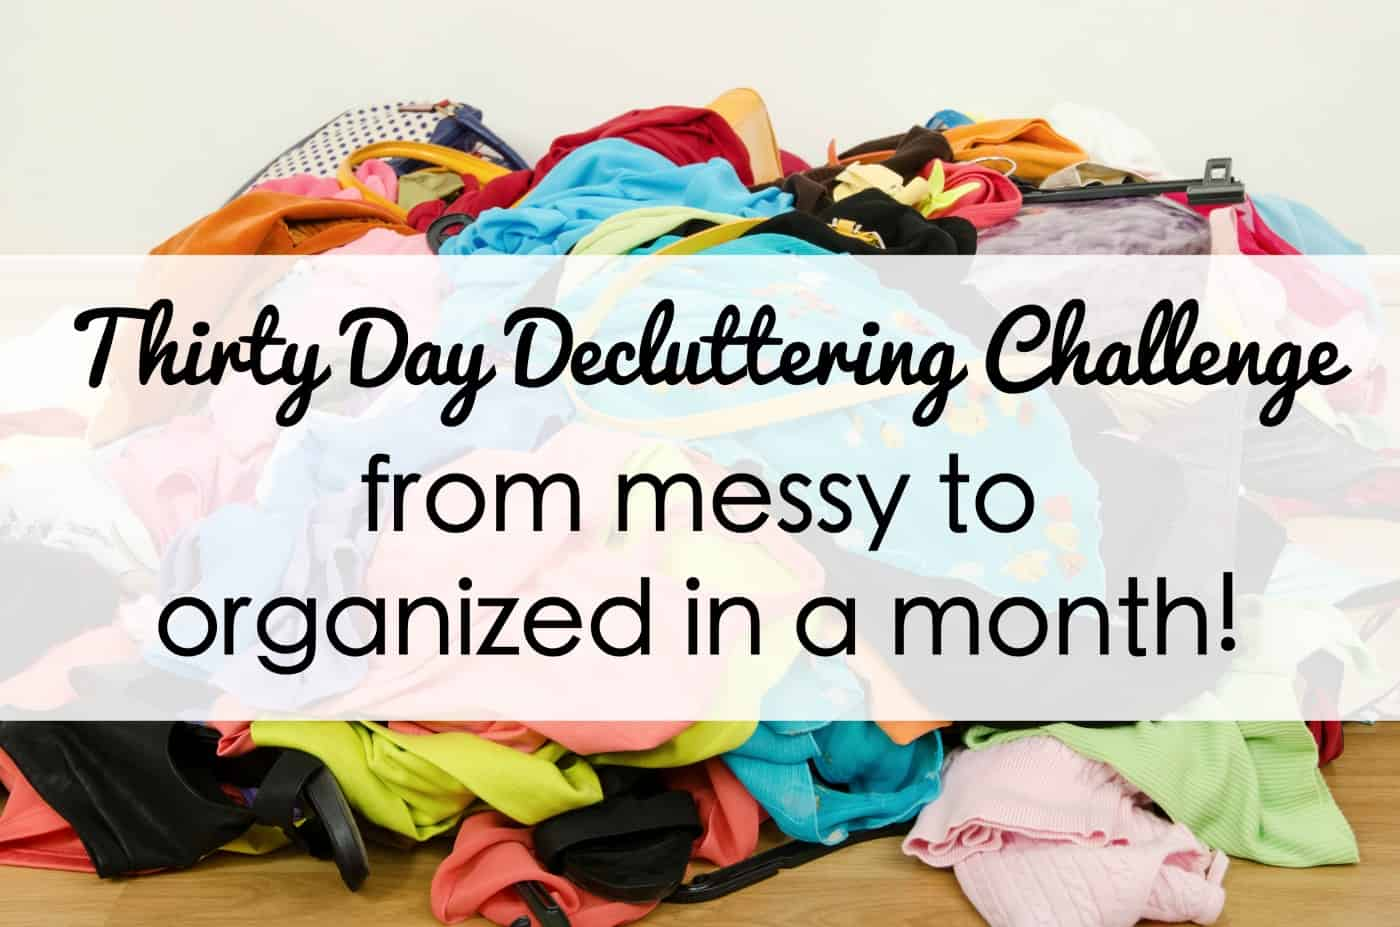 Declutter Your Home with This Easy 30-Day Challenge!